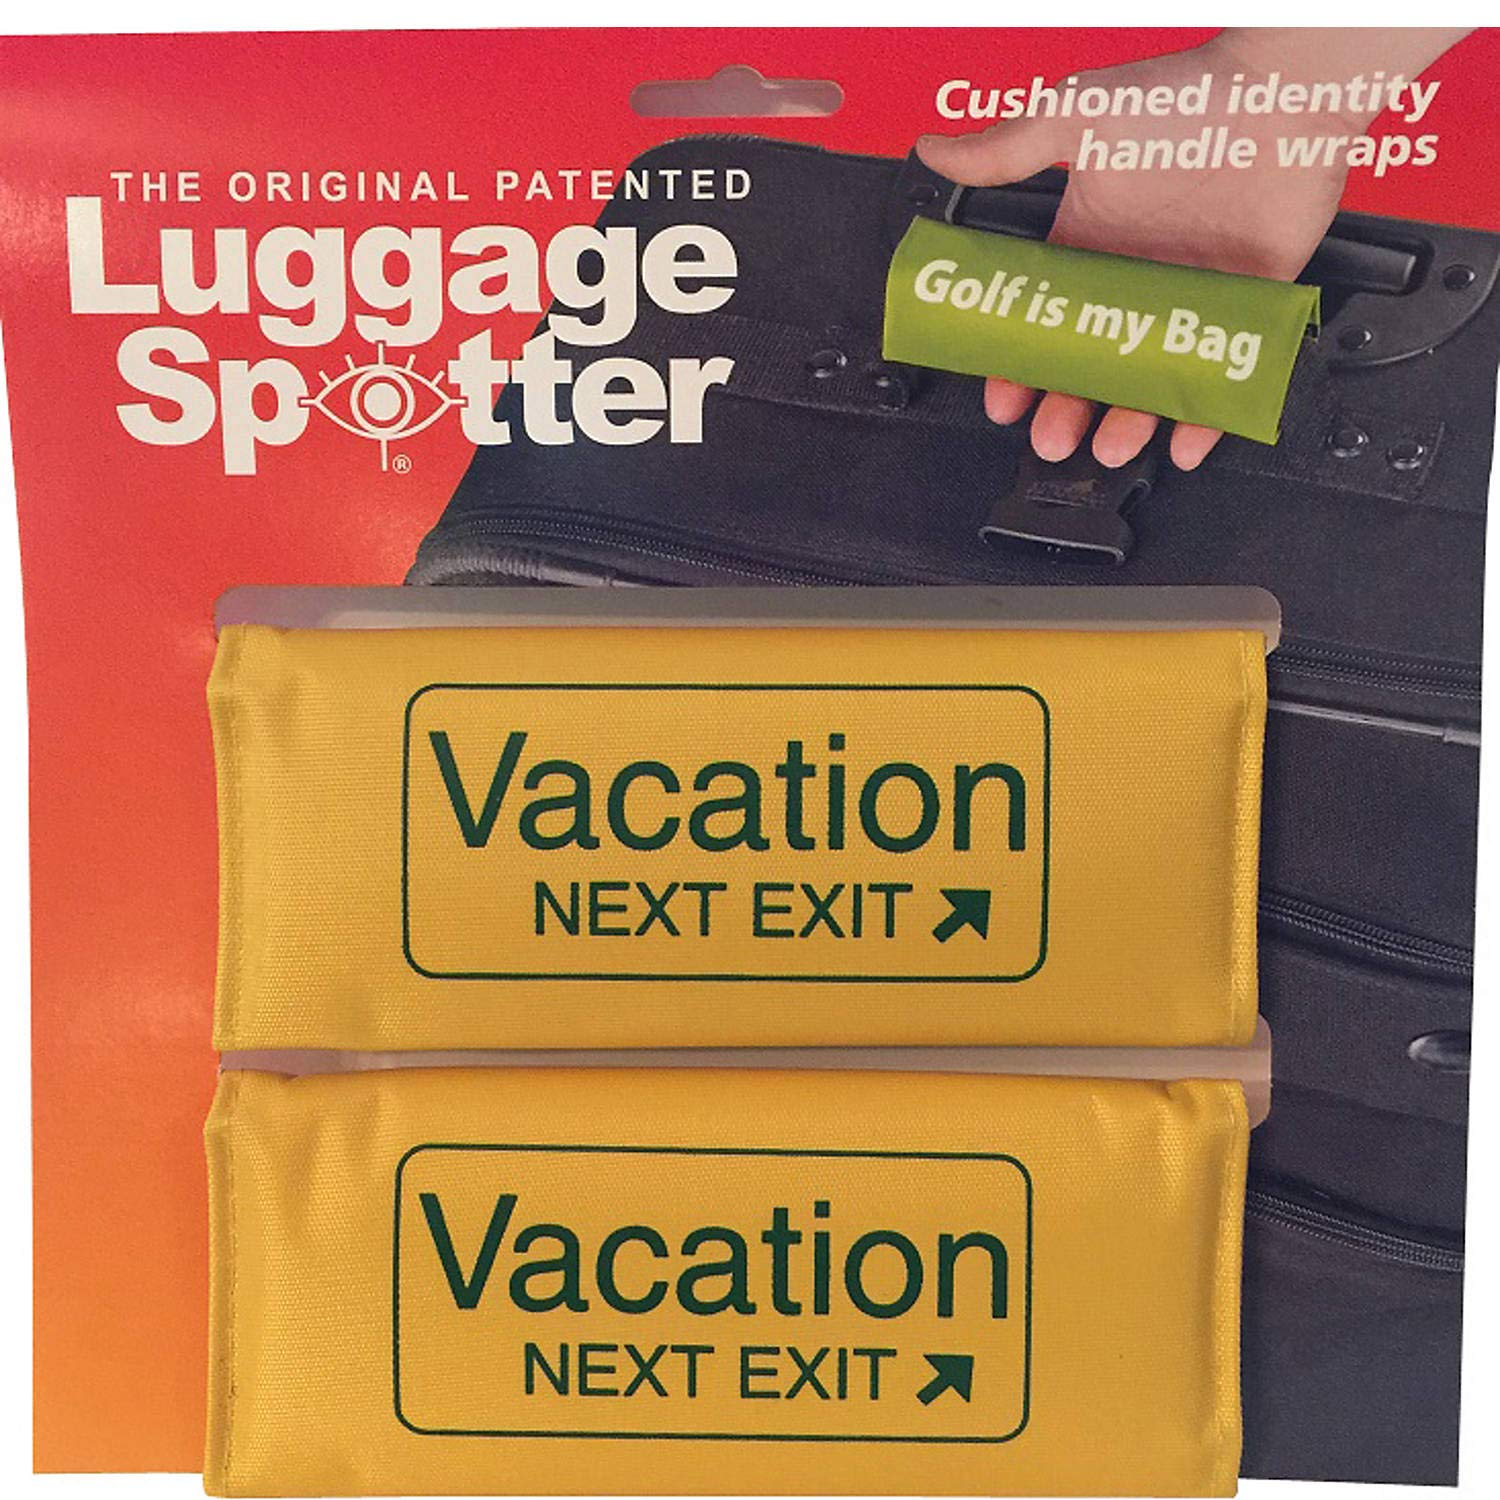 Luggage Spotter Buy ONE GET ONE Free Vacation Next EXIT Luggage Locator//Handle Grip//Luggage Grip//Travel Bag Tag//Luggage Handle Wrap Yellow 4 Pack